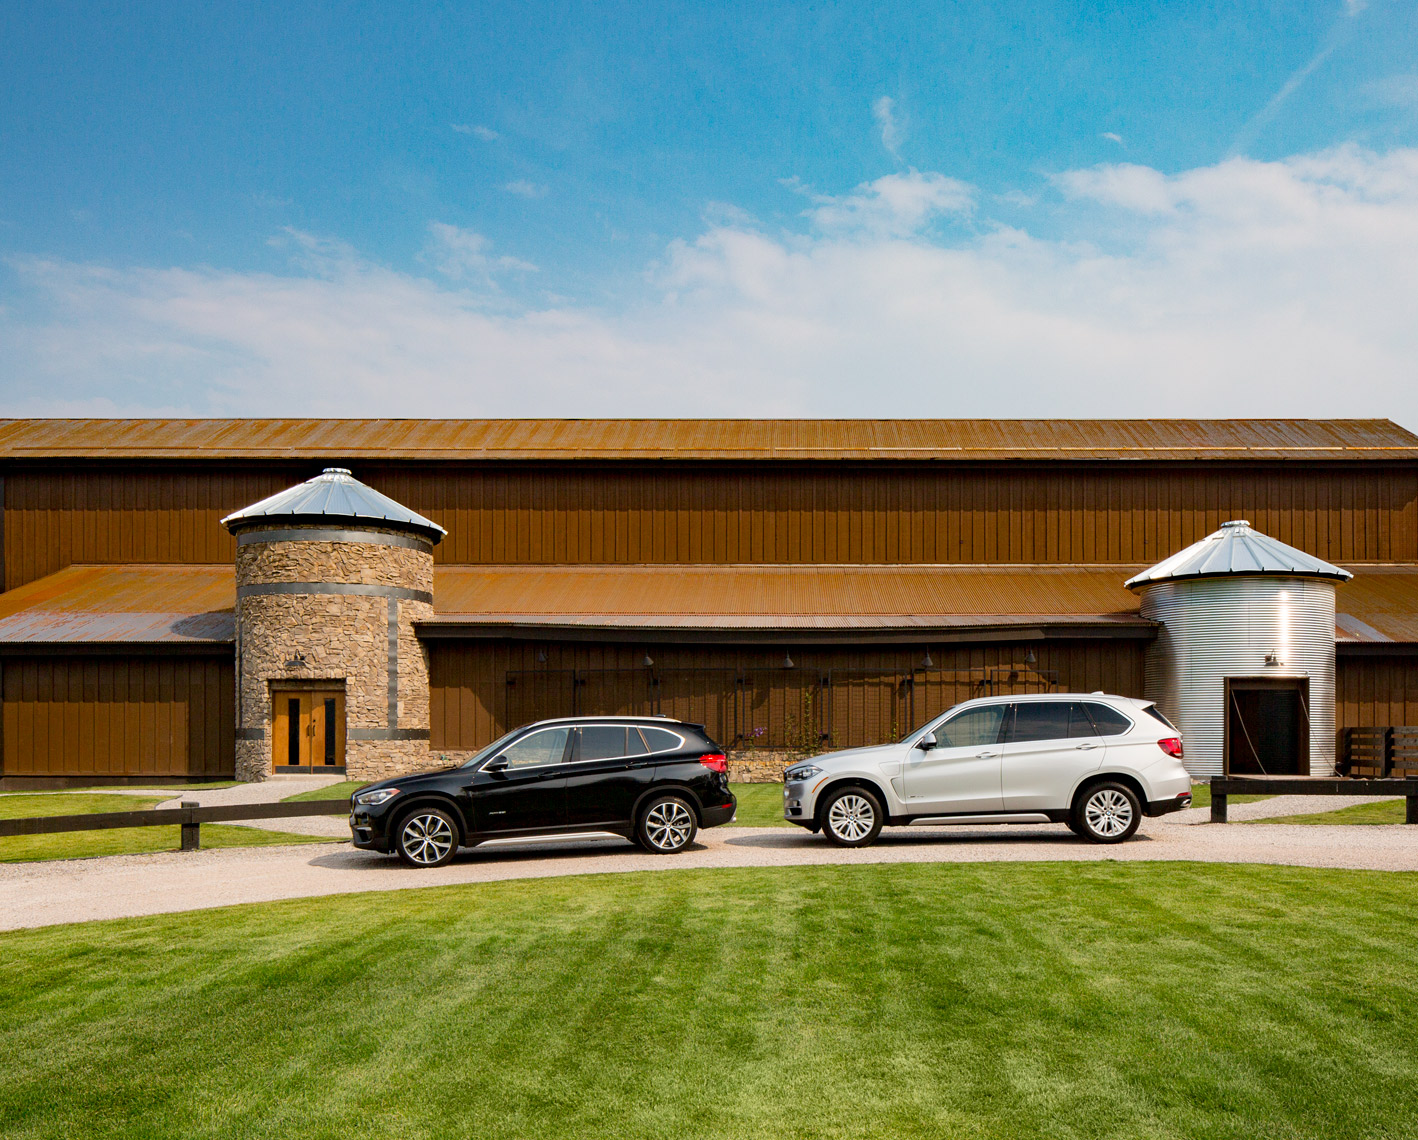 BMW X5 & X3 The Resort at Paws Up  Montana Poul Ober Photography